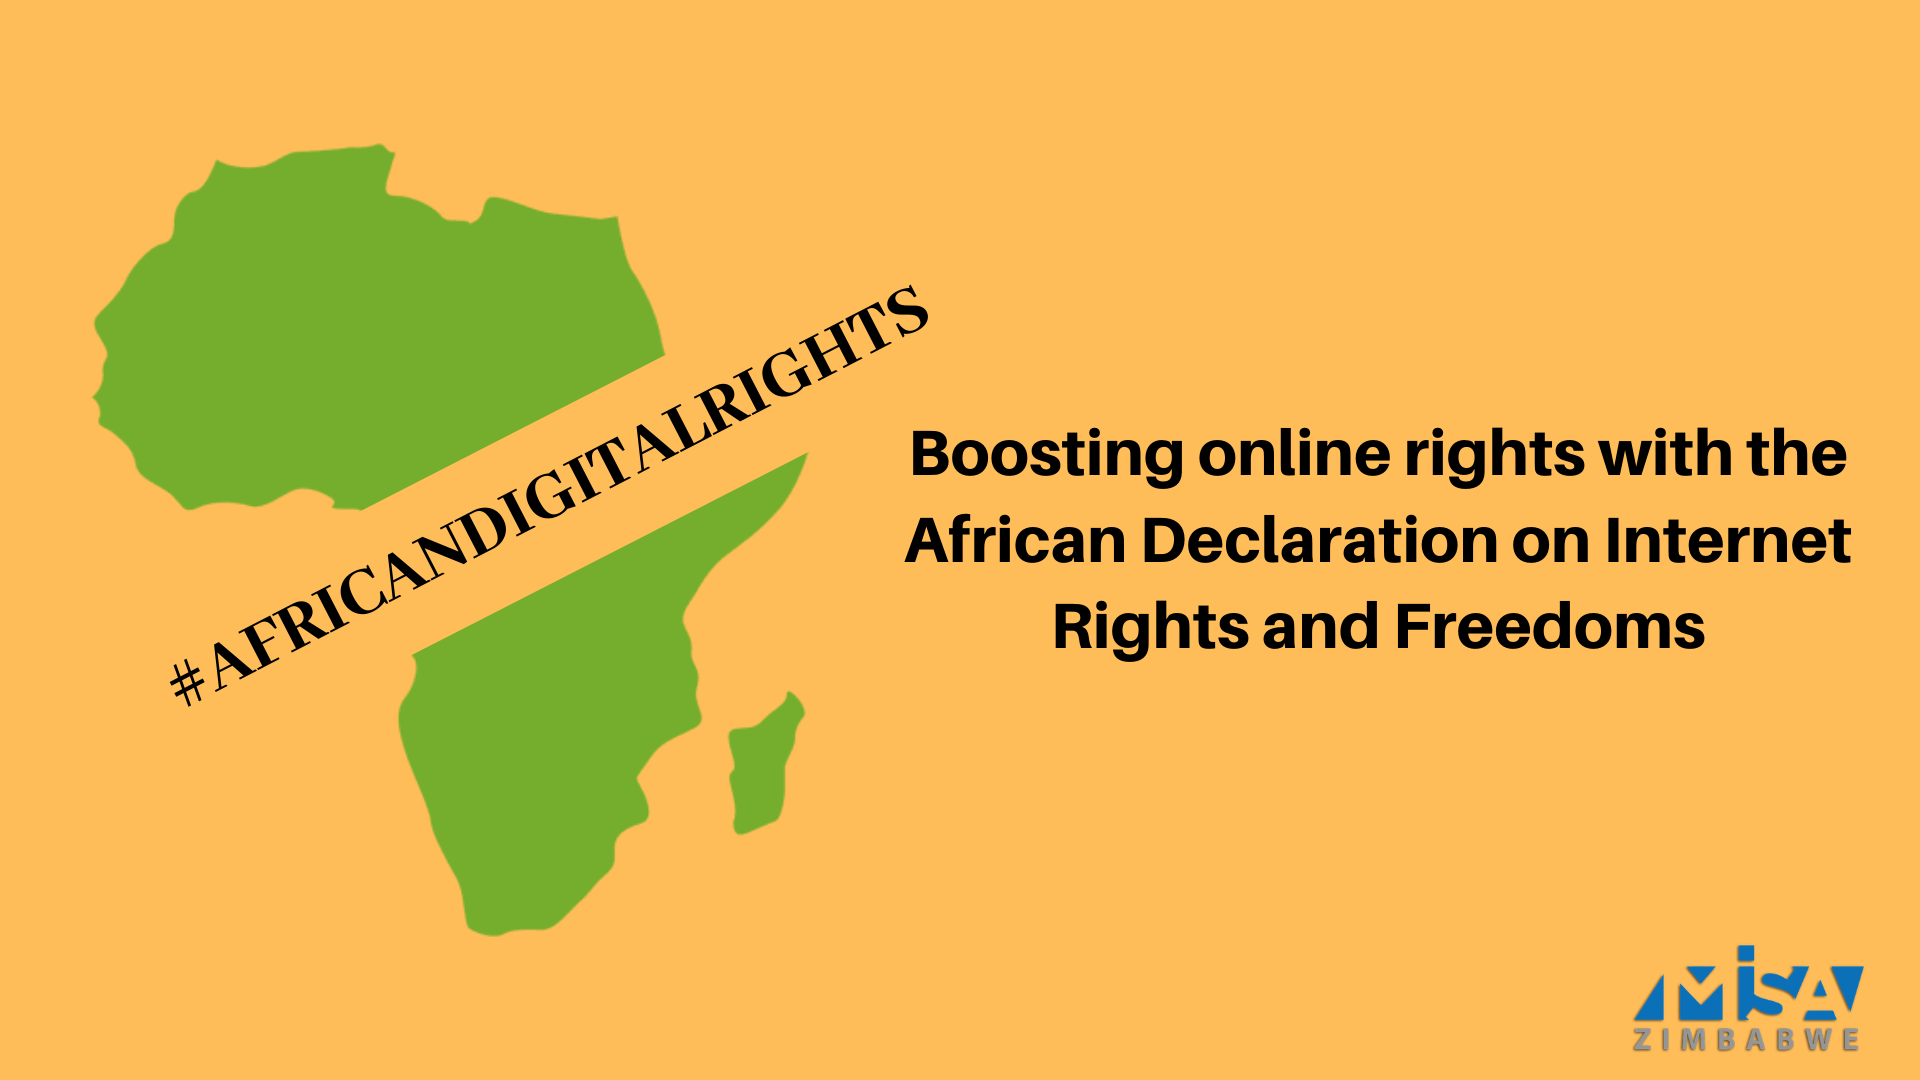 Boosting online rights with the African Declaration on Internet Rights and Freedoms